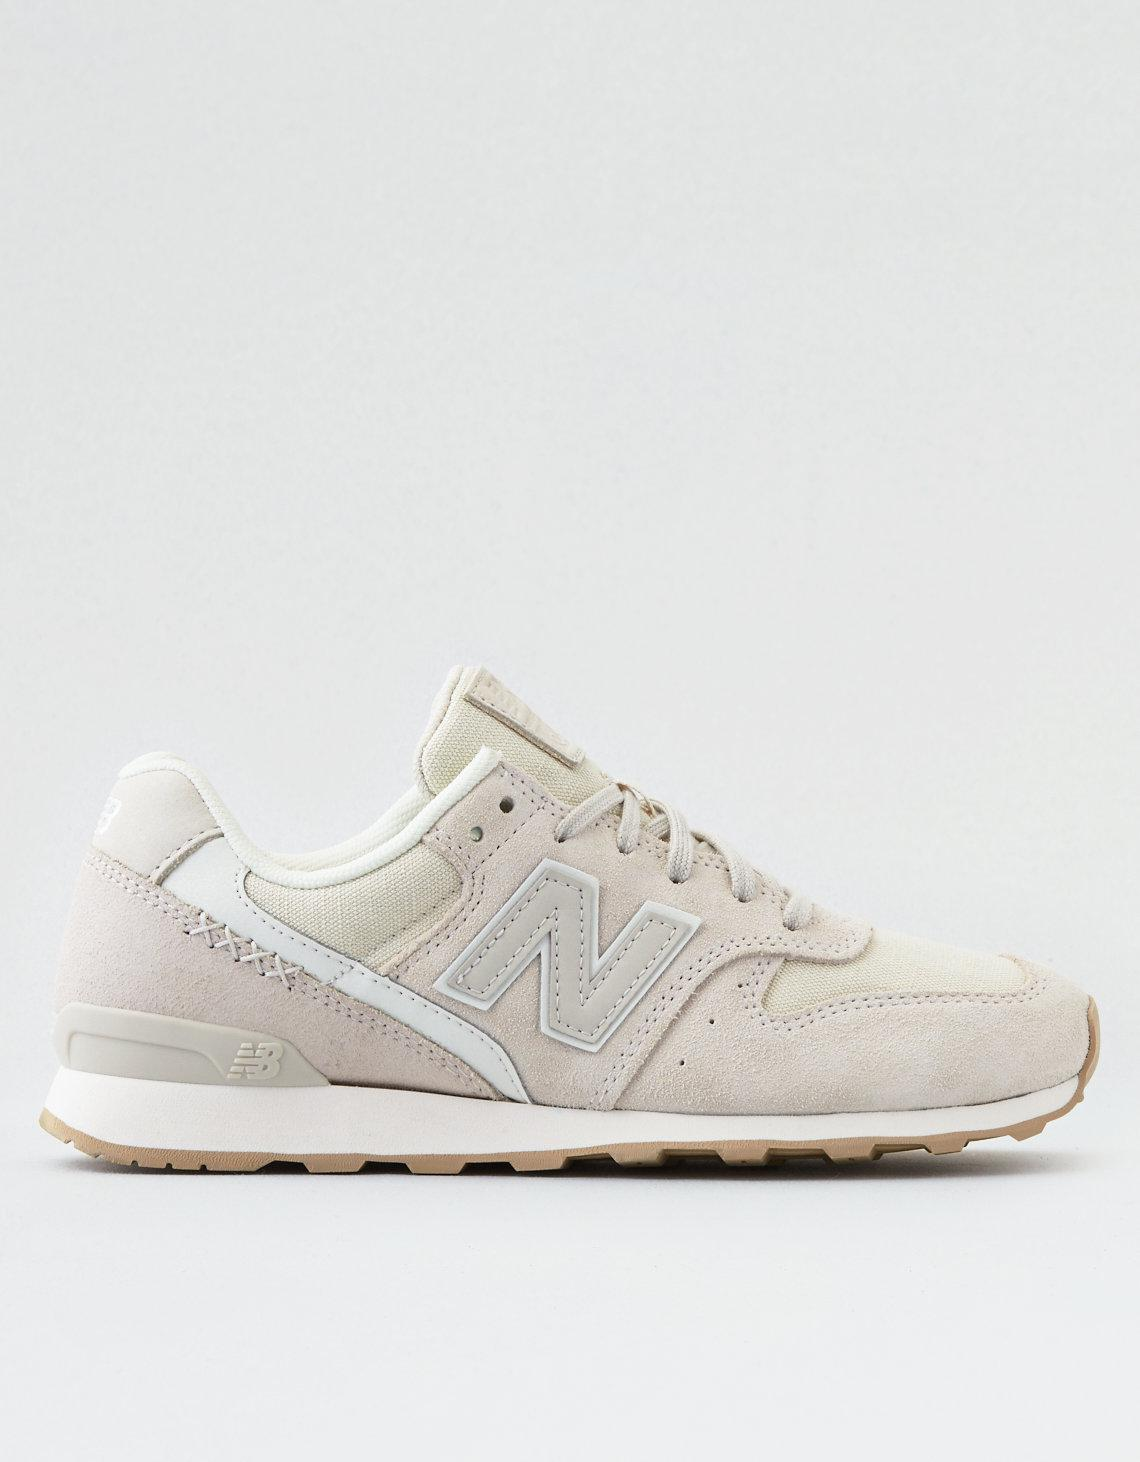 American Eagle Suede New Balance 696 in